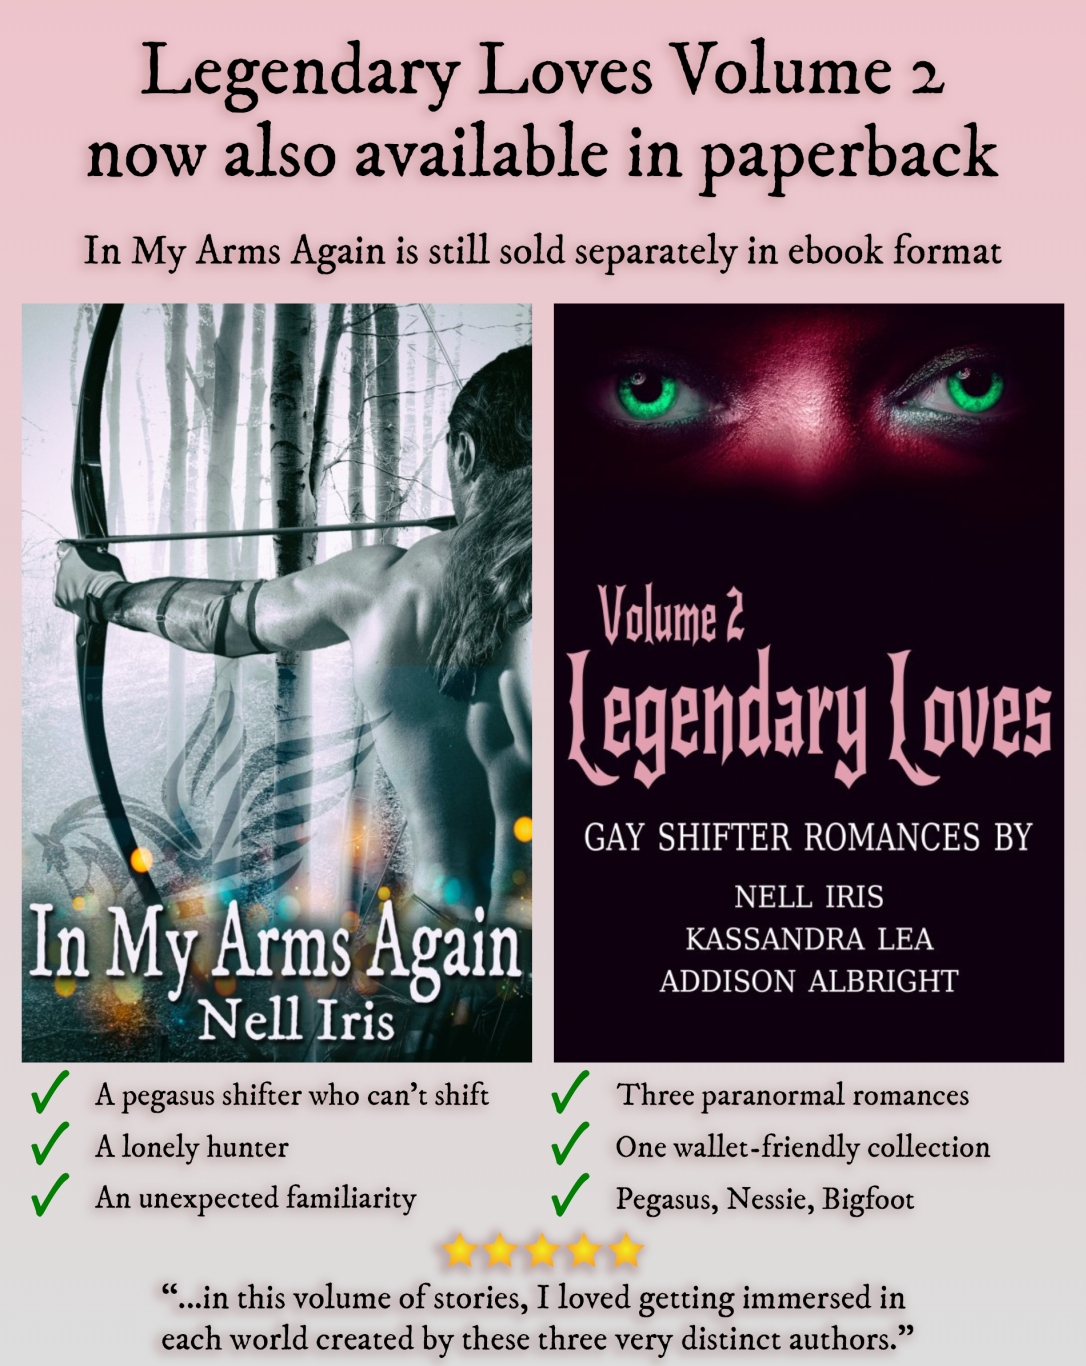 imaa + ll v2 checkmark review quote also in paperback